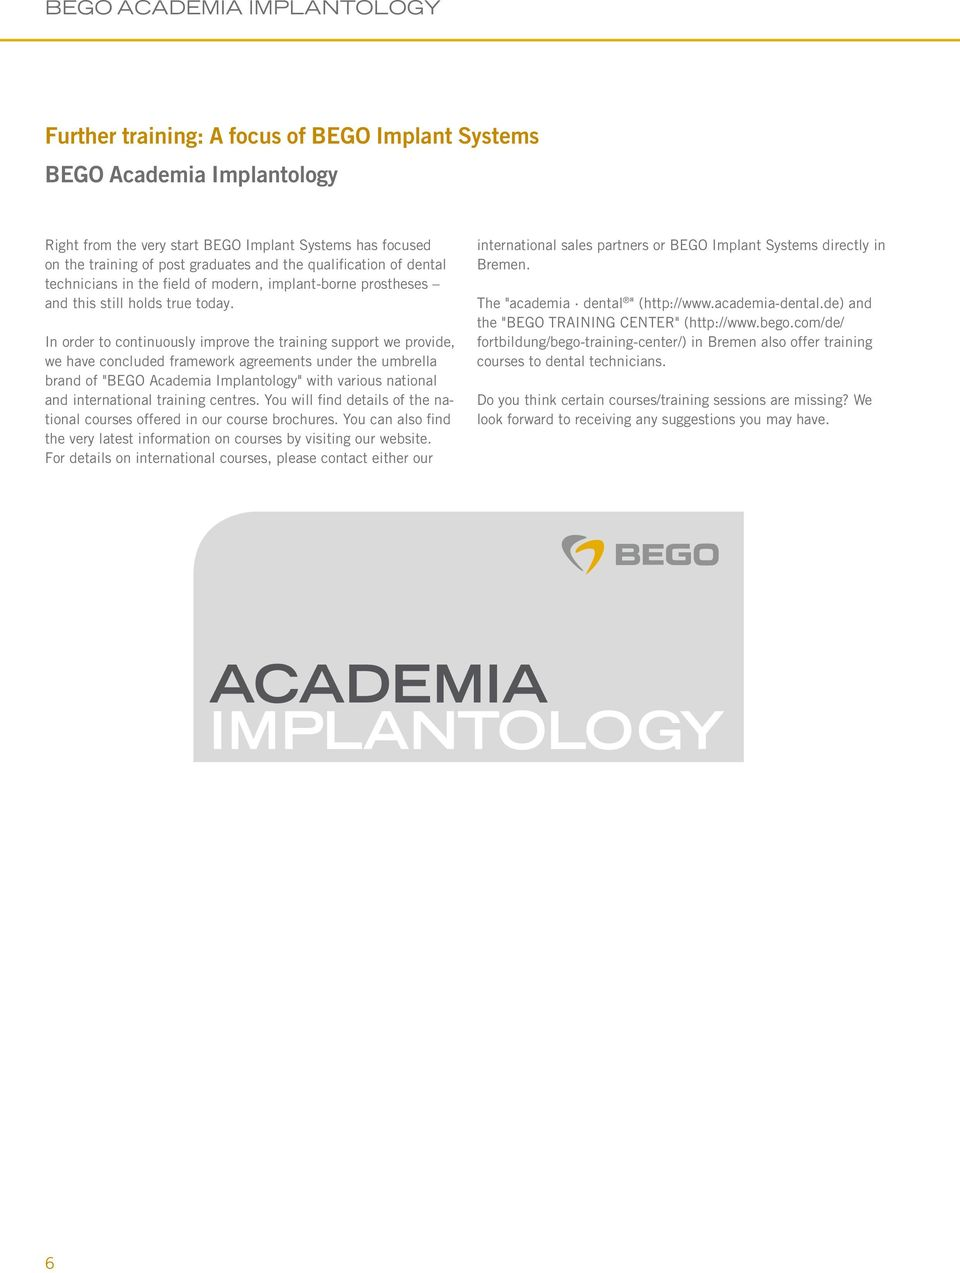 "In order to continuously improve the training support we provide, we have concluded framework agreements under the umbrella brand of ""BEGO Academia Implantology"" with various national and"